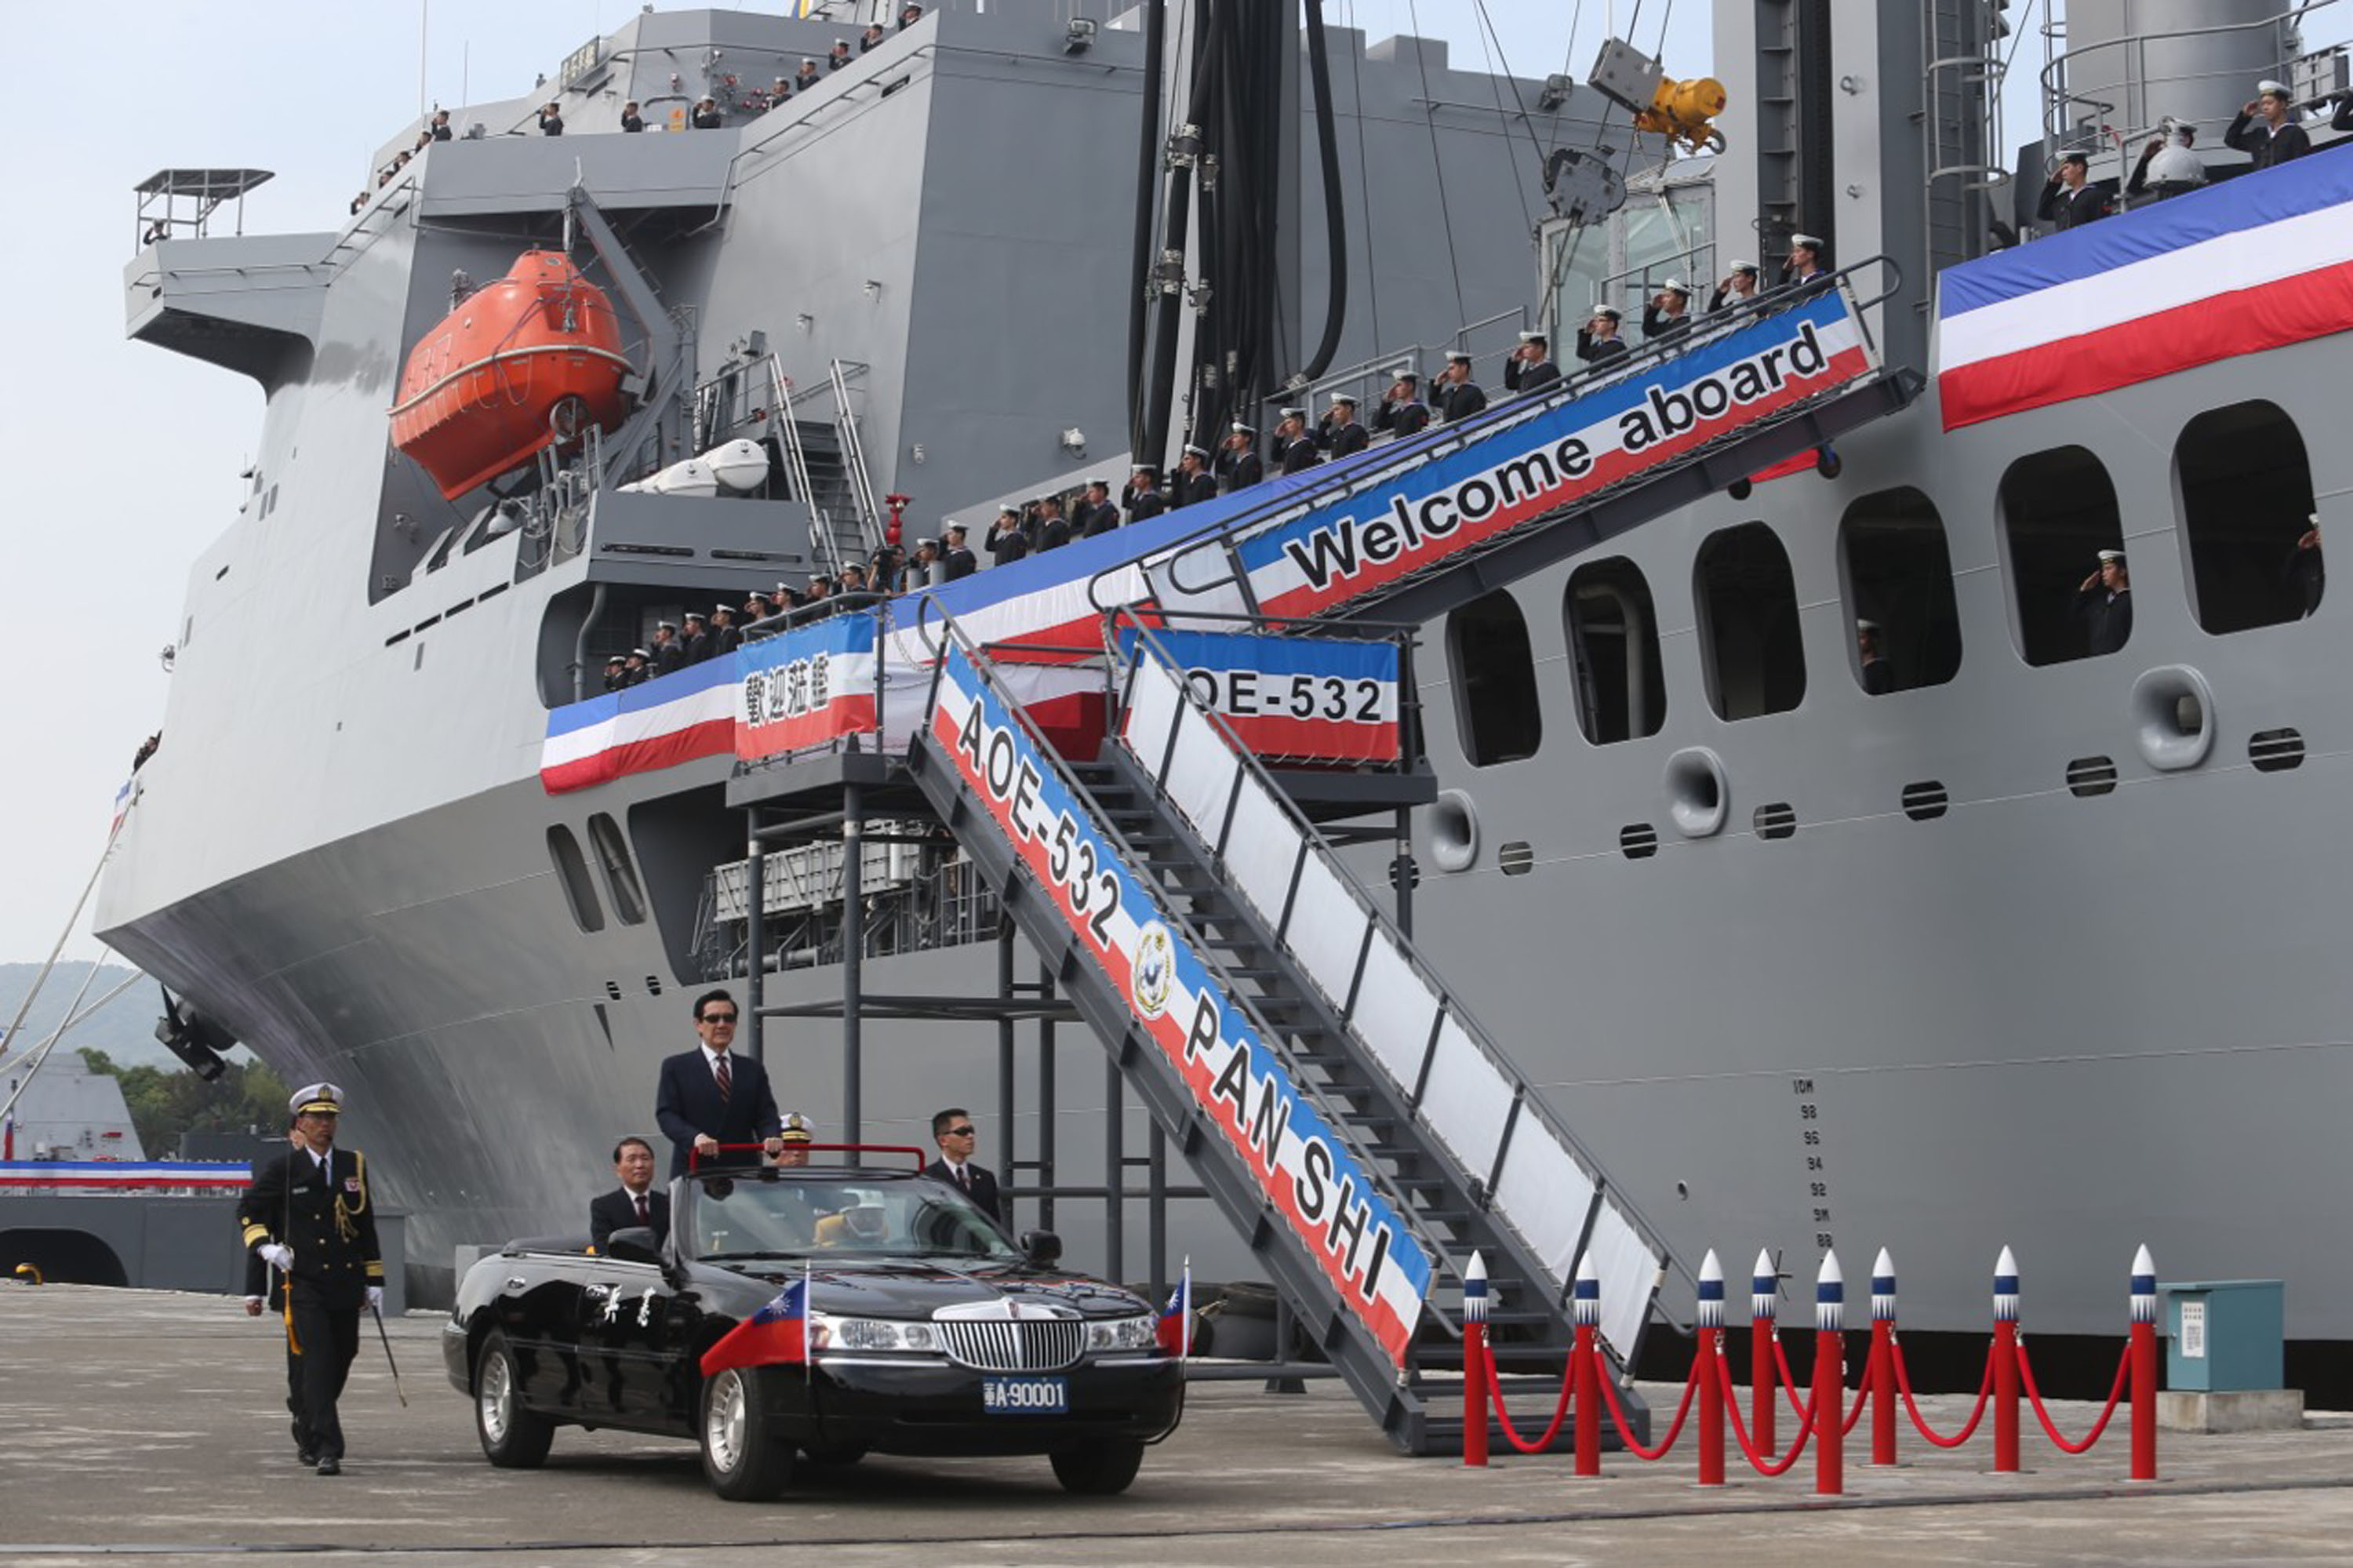 President attends ceremony commissioning military vessels (update)